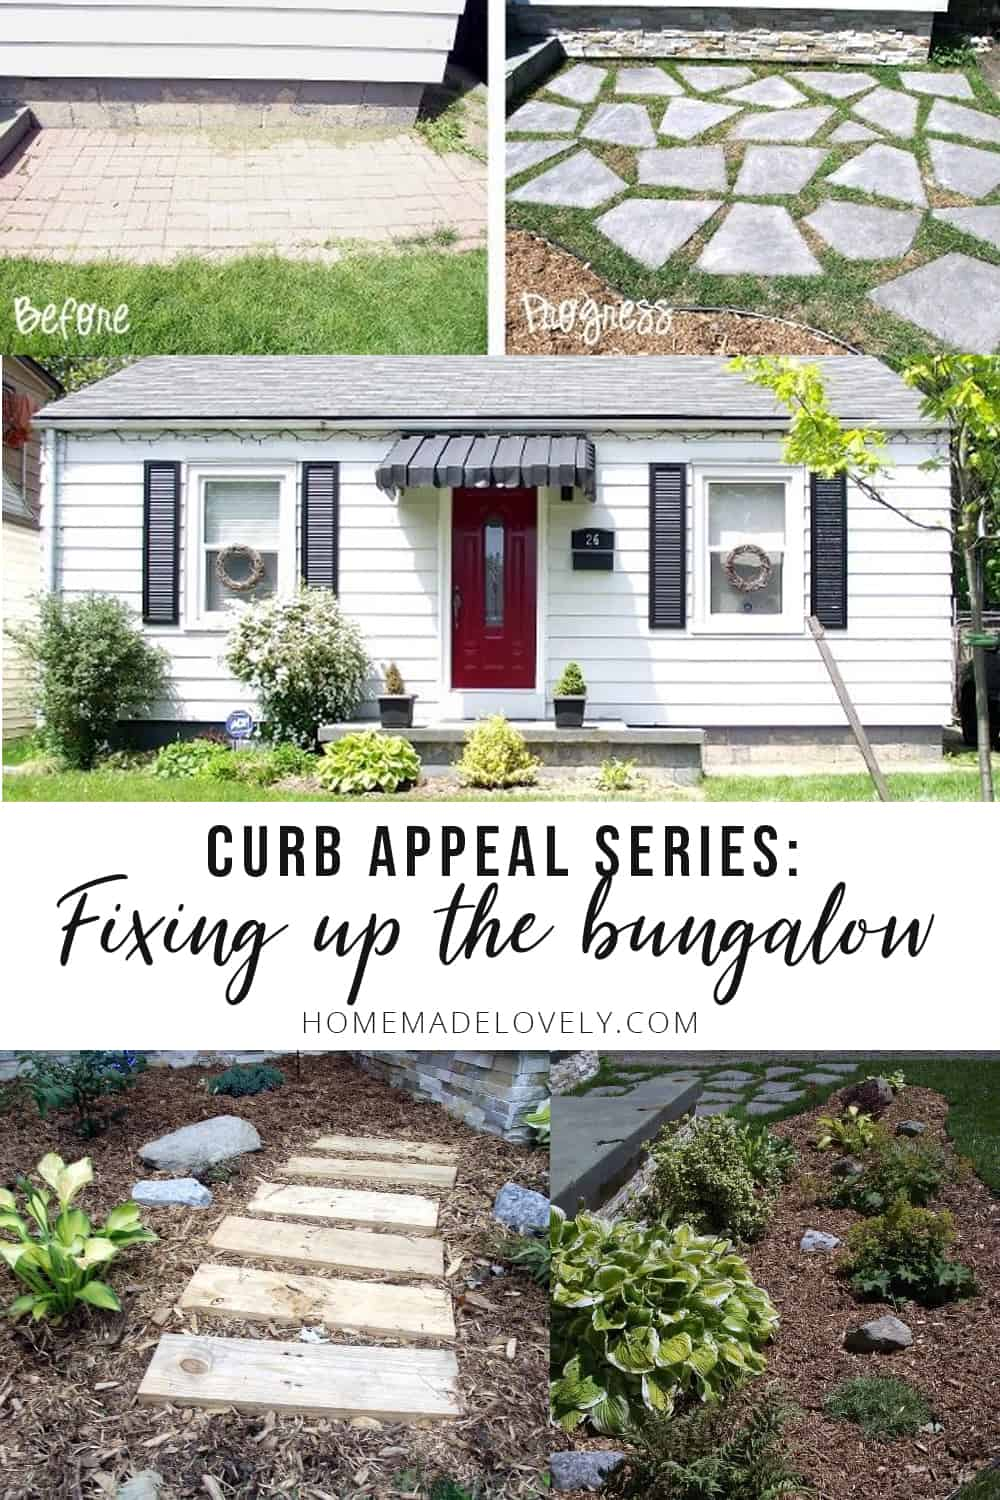 Introducing The Curb Appeal Series